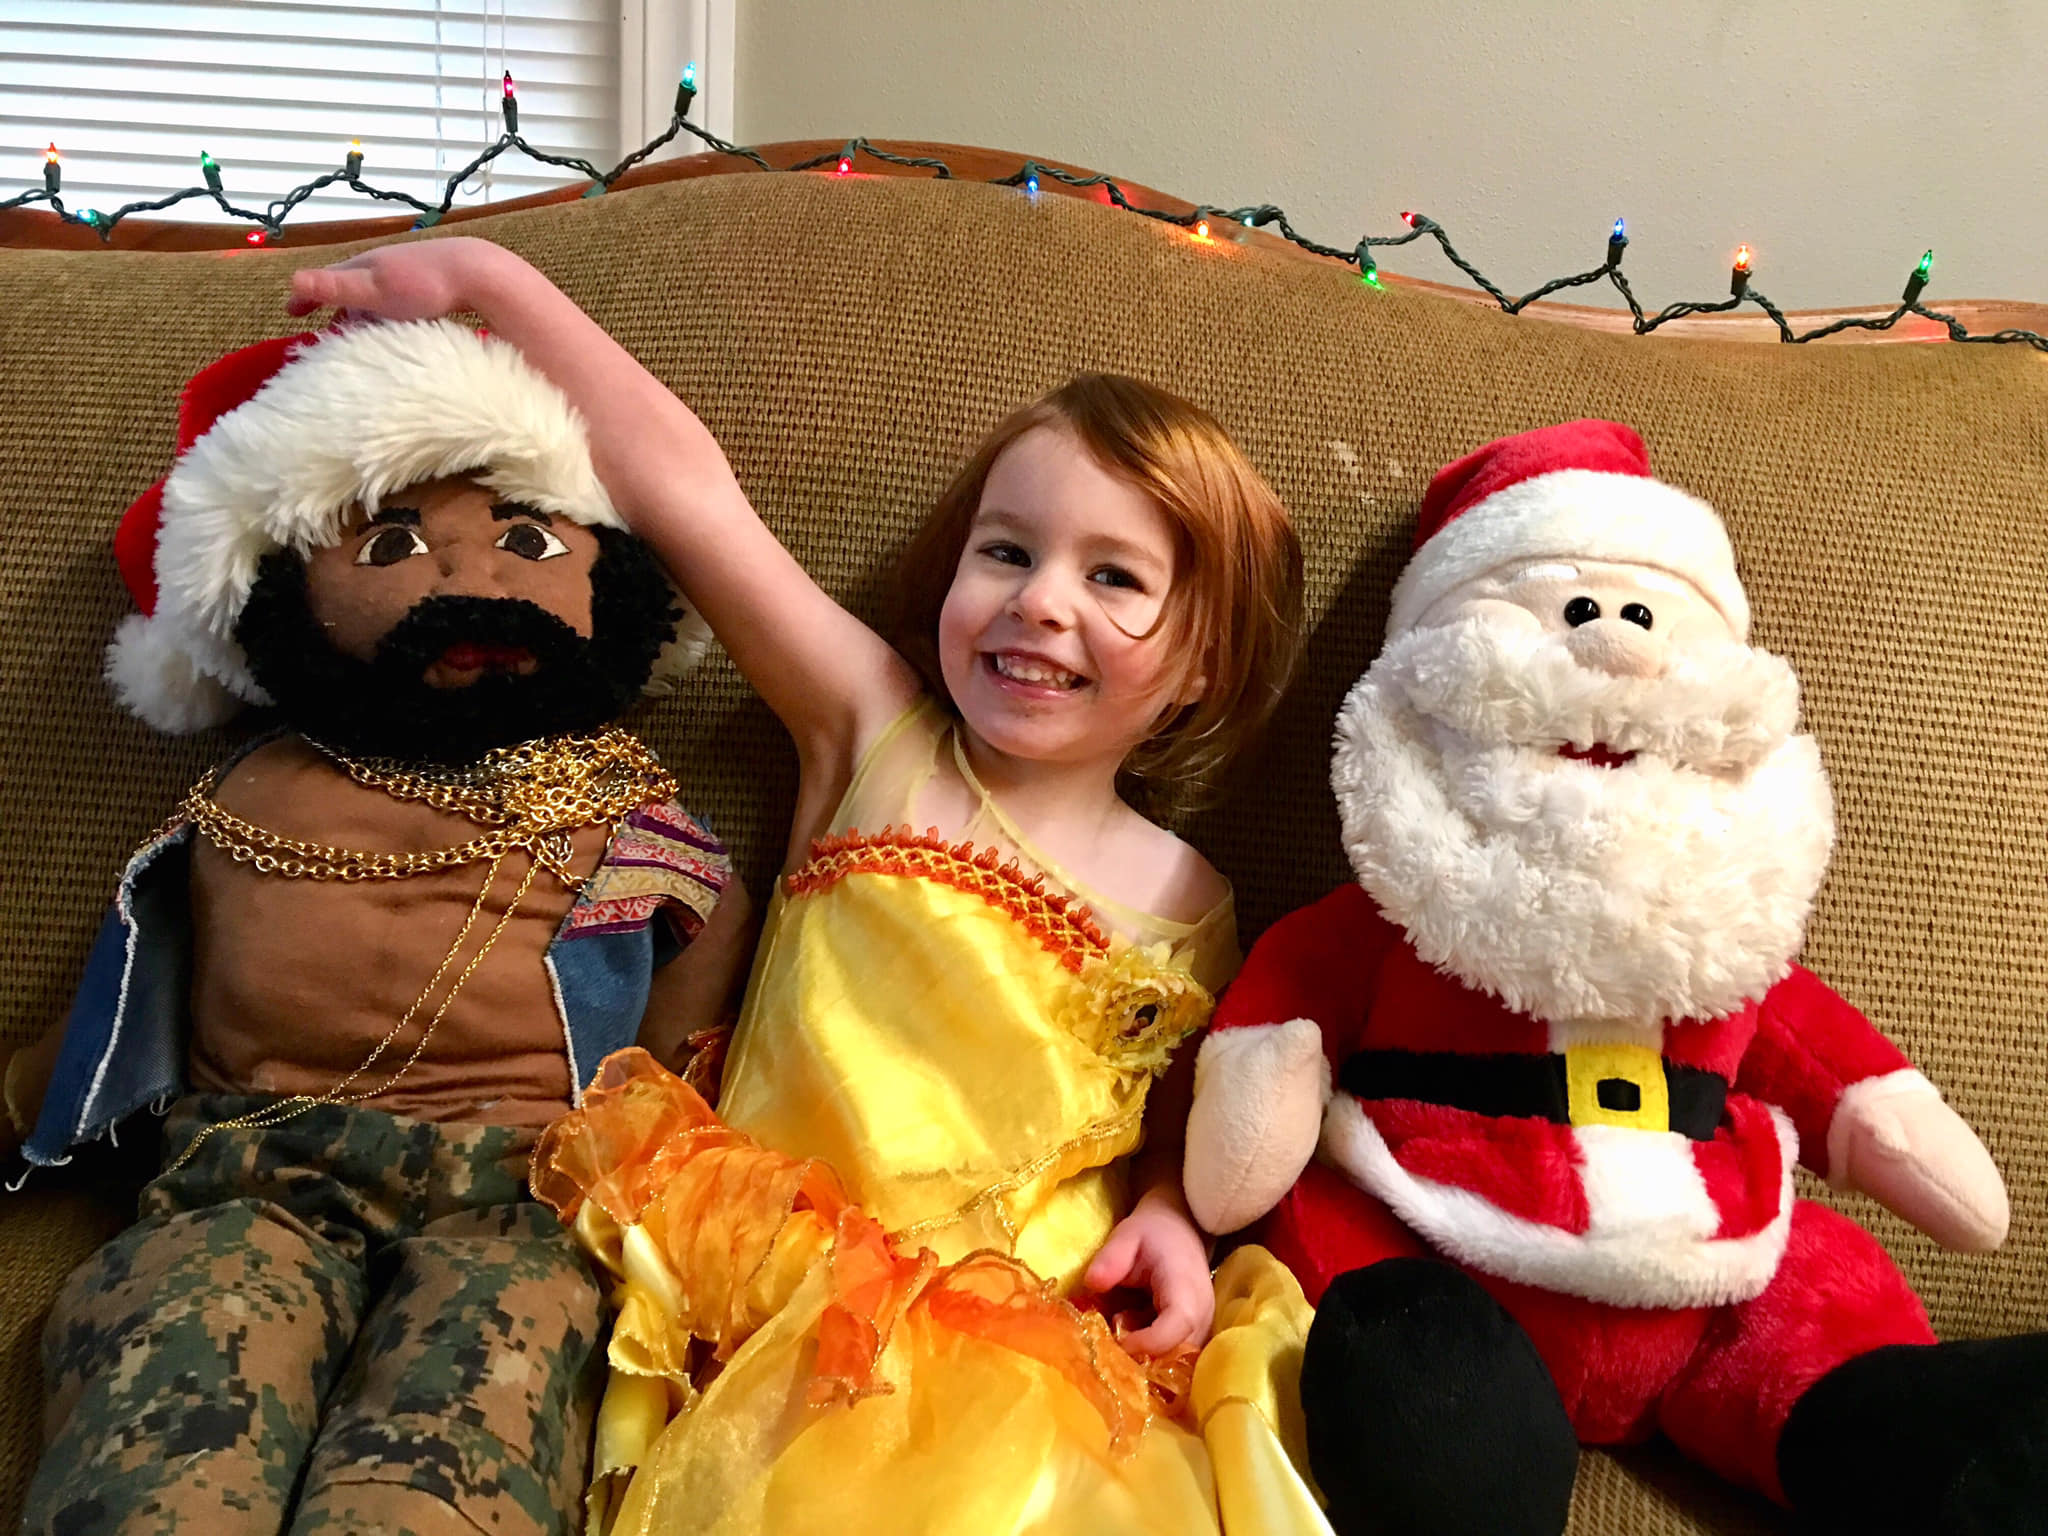 Almost 3 year old with Mr. T and Santa